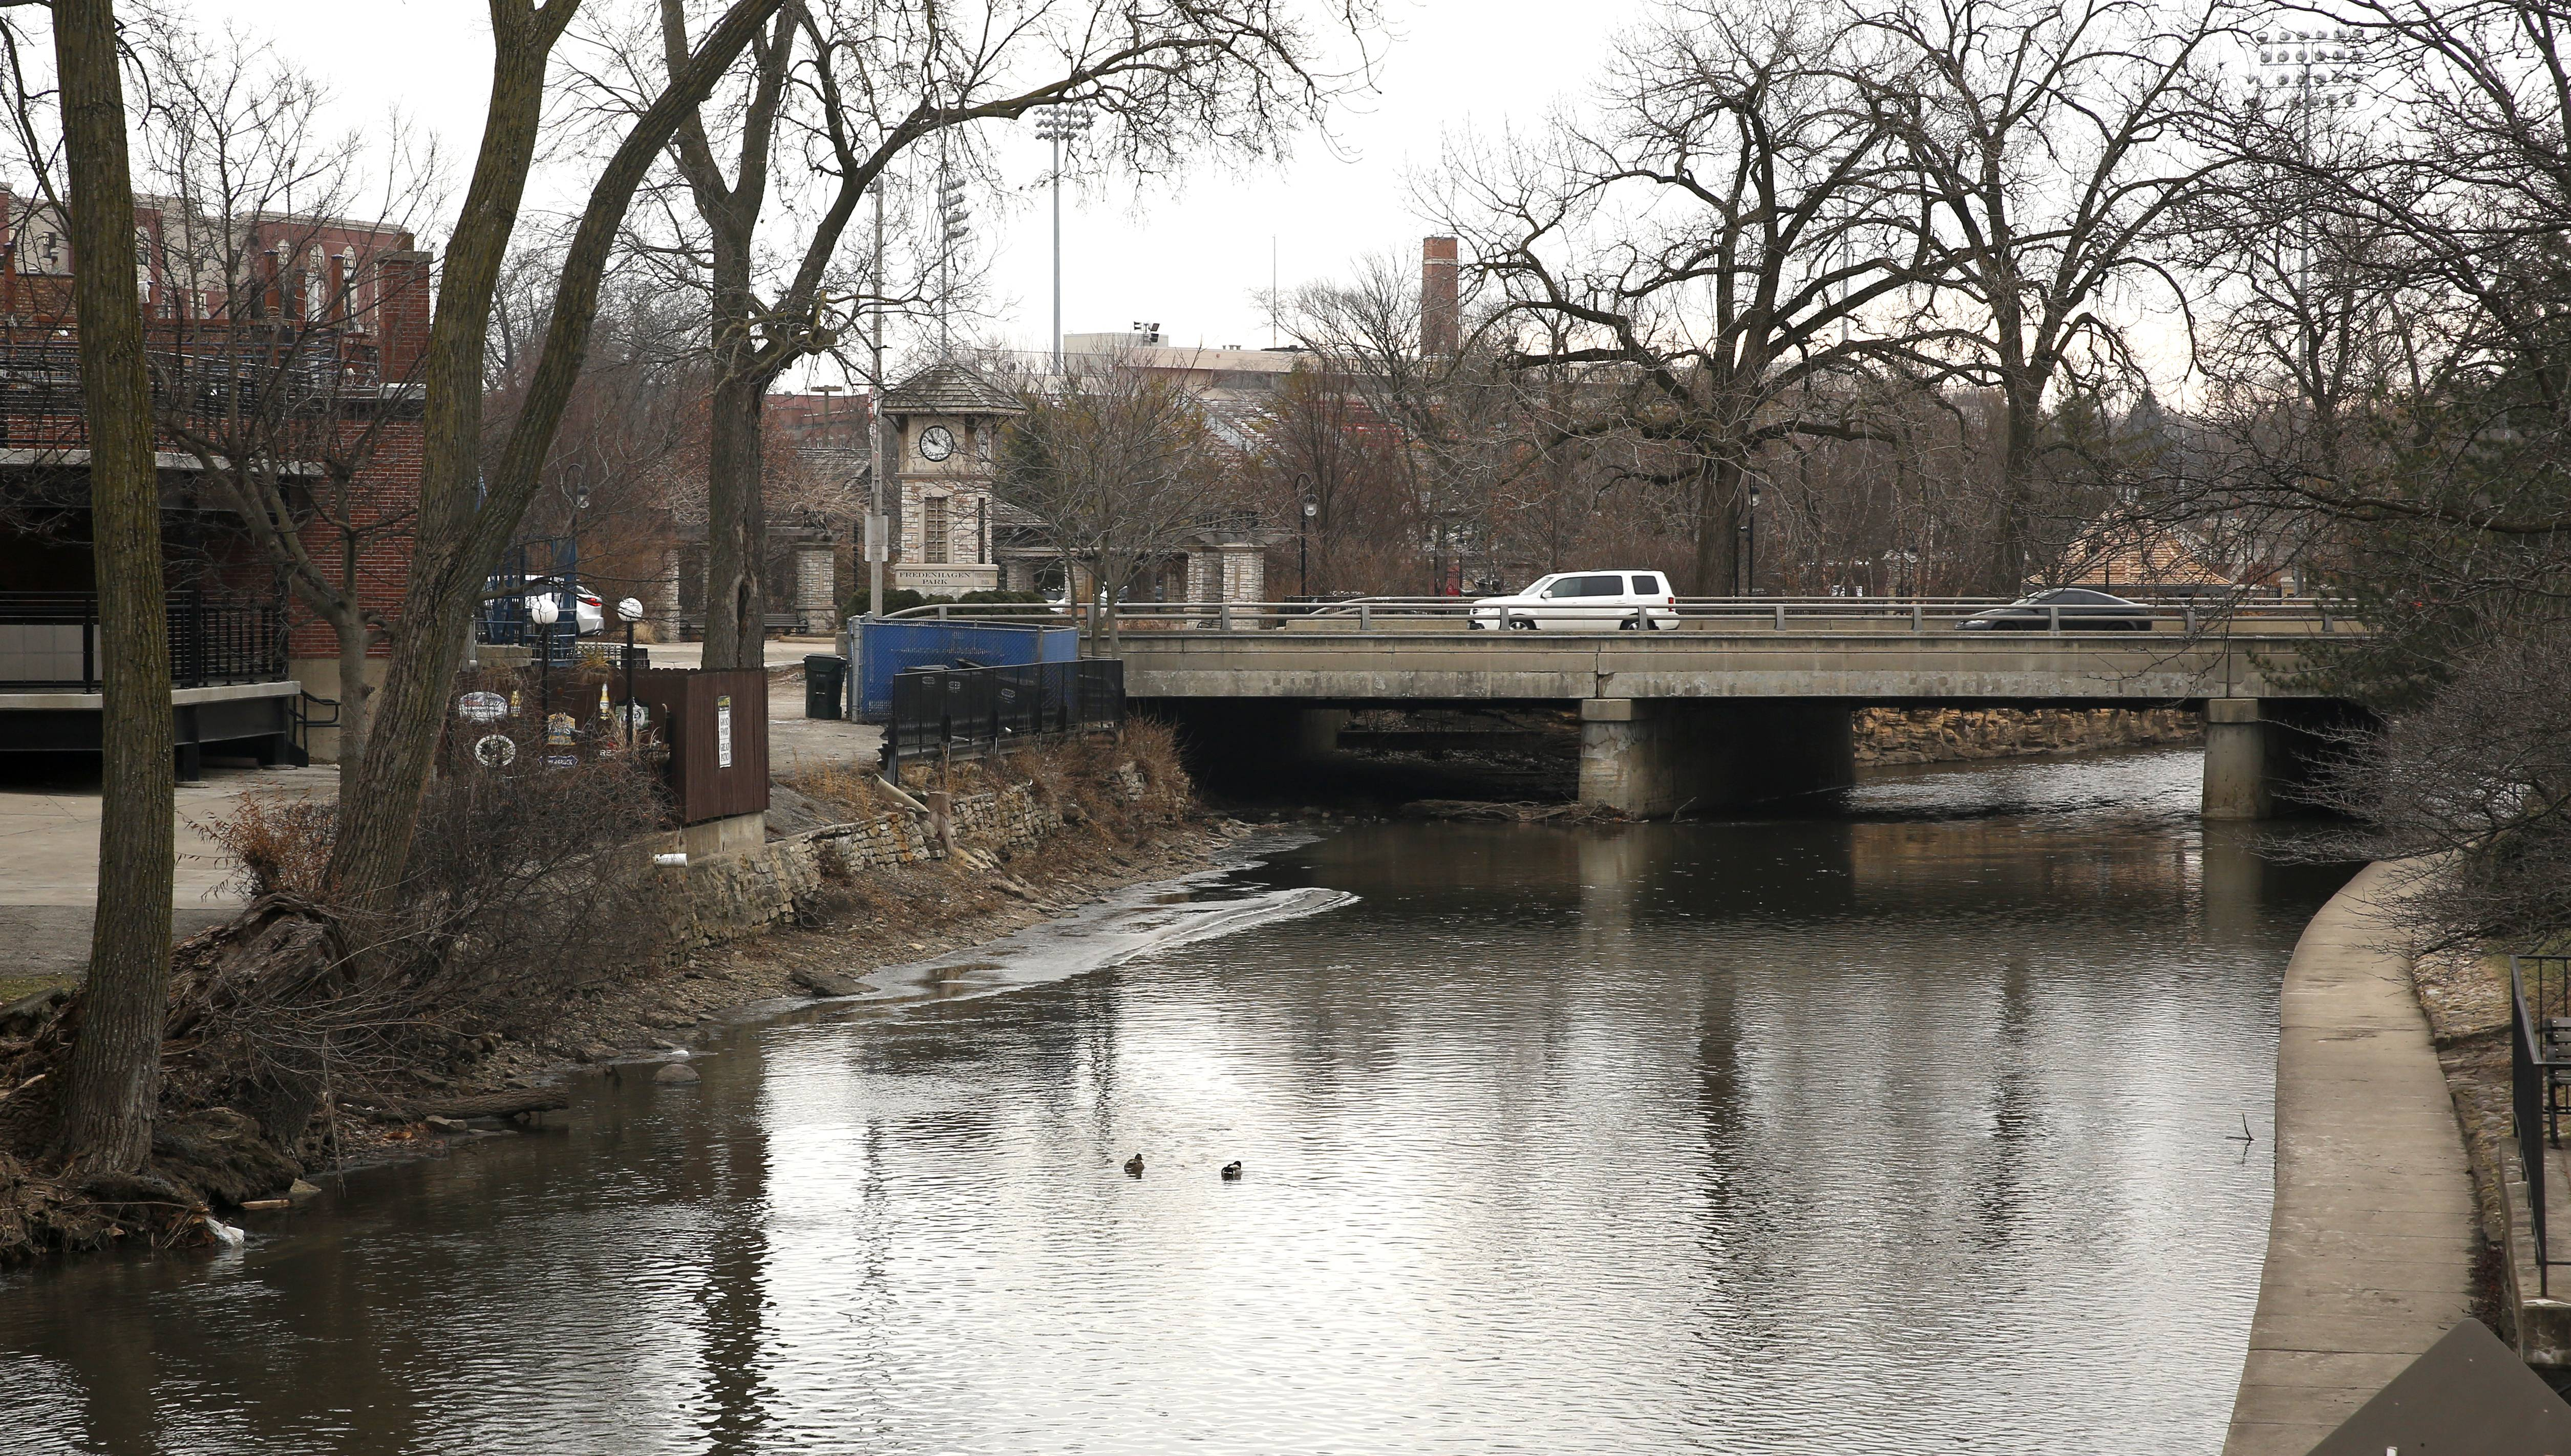 The Washington Street bridge in downtown Naperville is nearly 100 years old and set to be replaced in 2019. The city expects to spend between $5 million and $6 million to rebuild the structure and widen the road to two lanes in each direction with a center turning lane between Chicago and Aurora avenues.